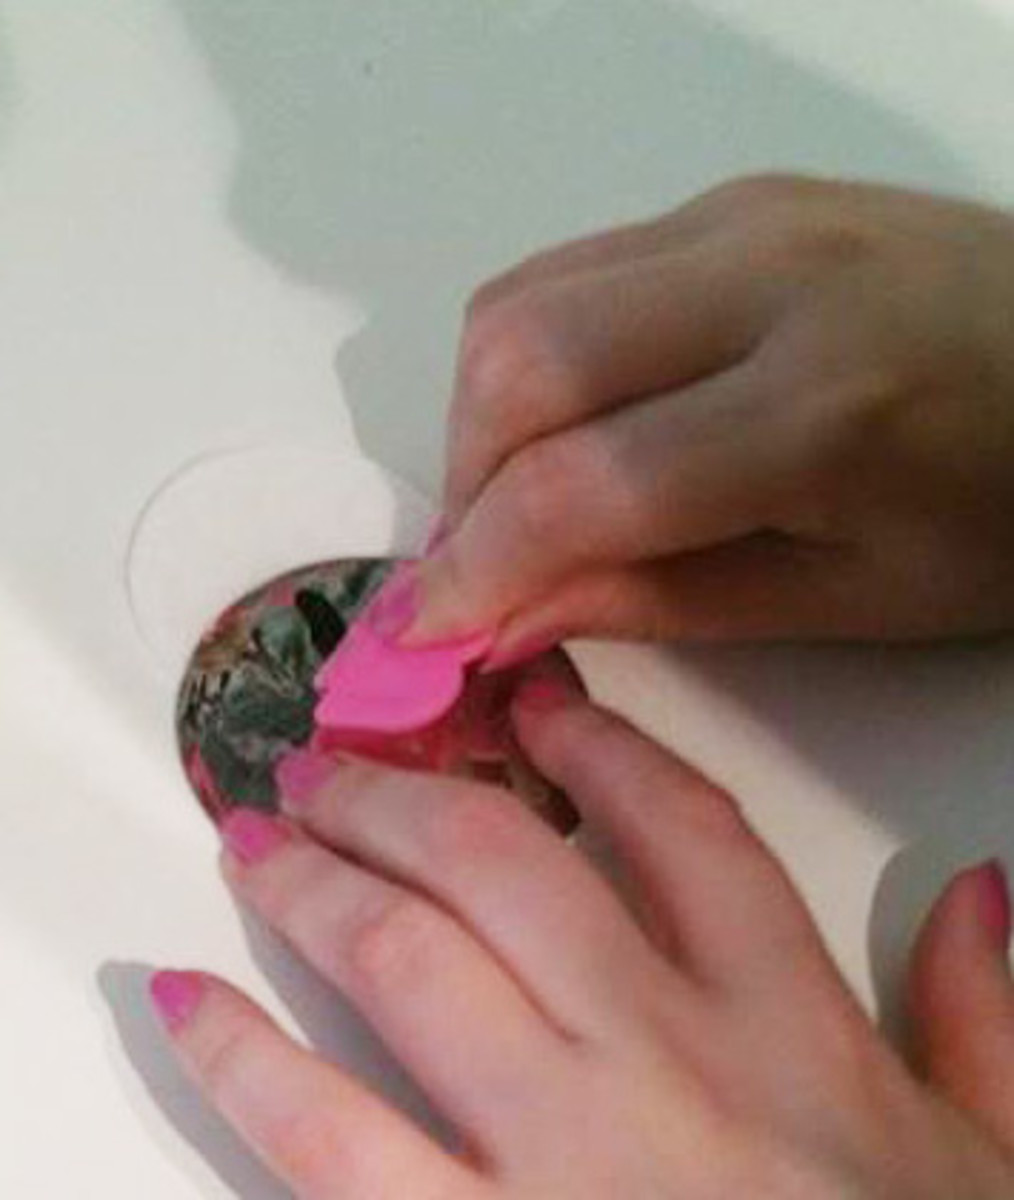 Scrape off excess nail polish...